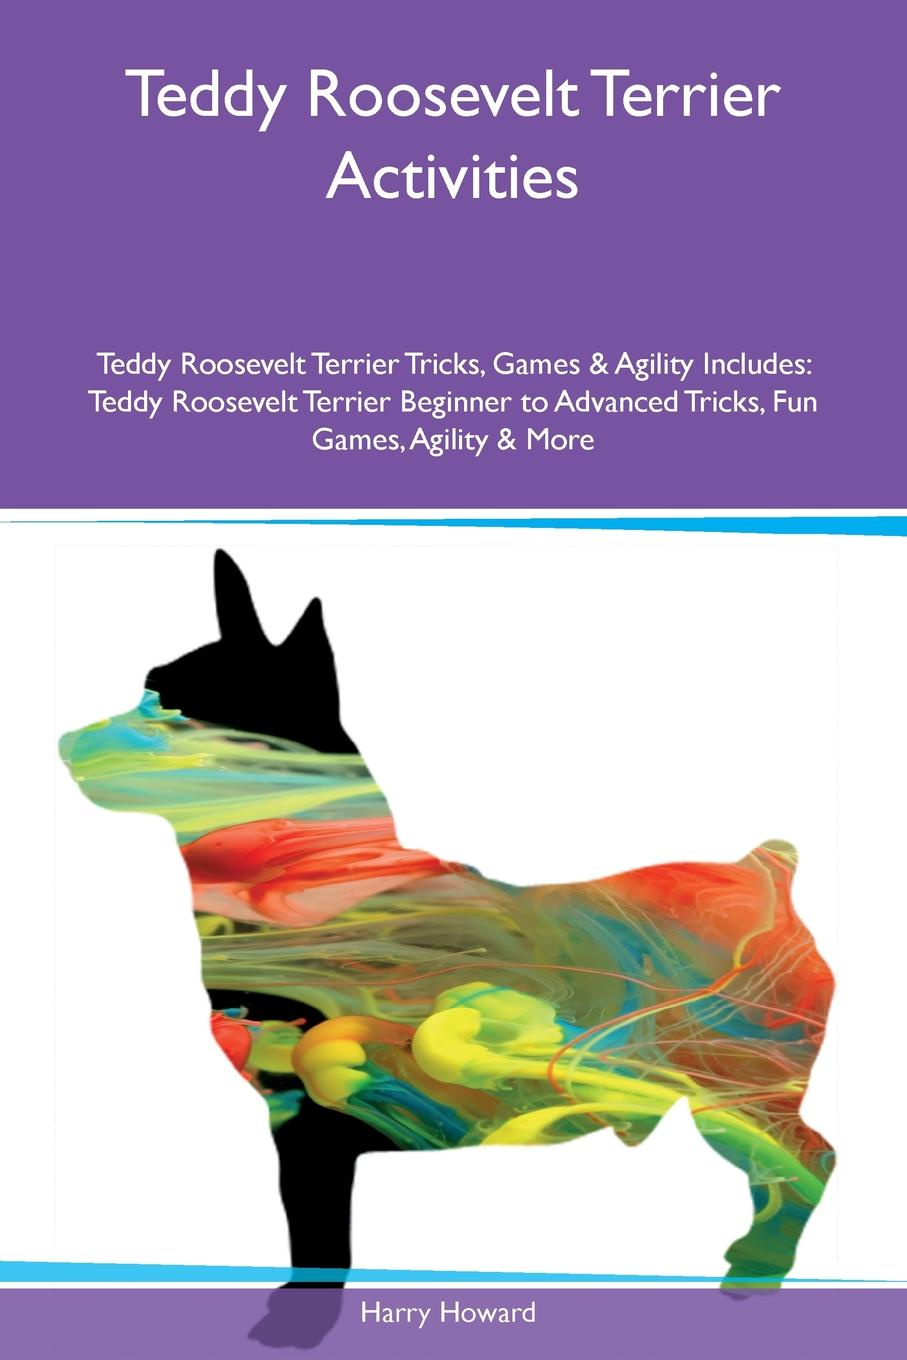 Teddy Roosevelt Terrier Activities Teddy Roosevelt Terrier Tricks, Games & Agility Includes. Teddy Roosevelt Terrier Beginner to Advanced Tricks, Fun Games, Agility & More